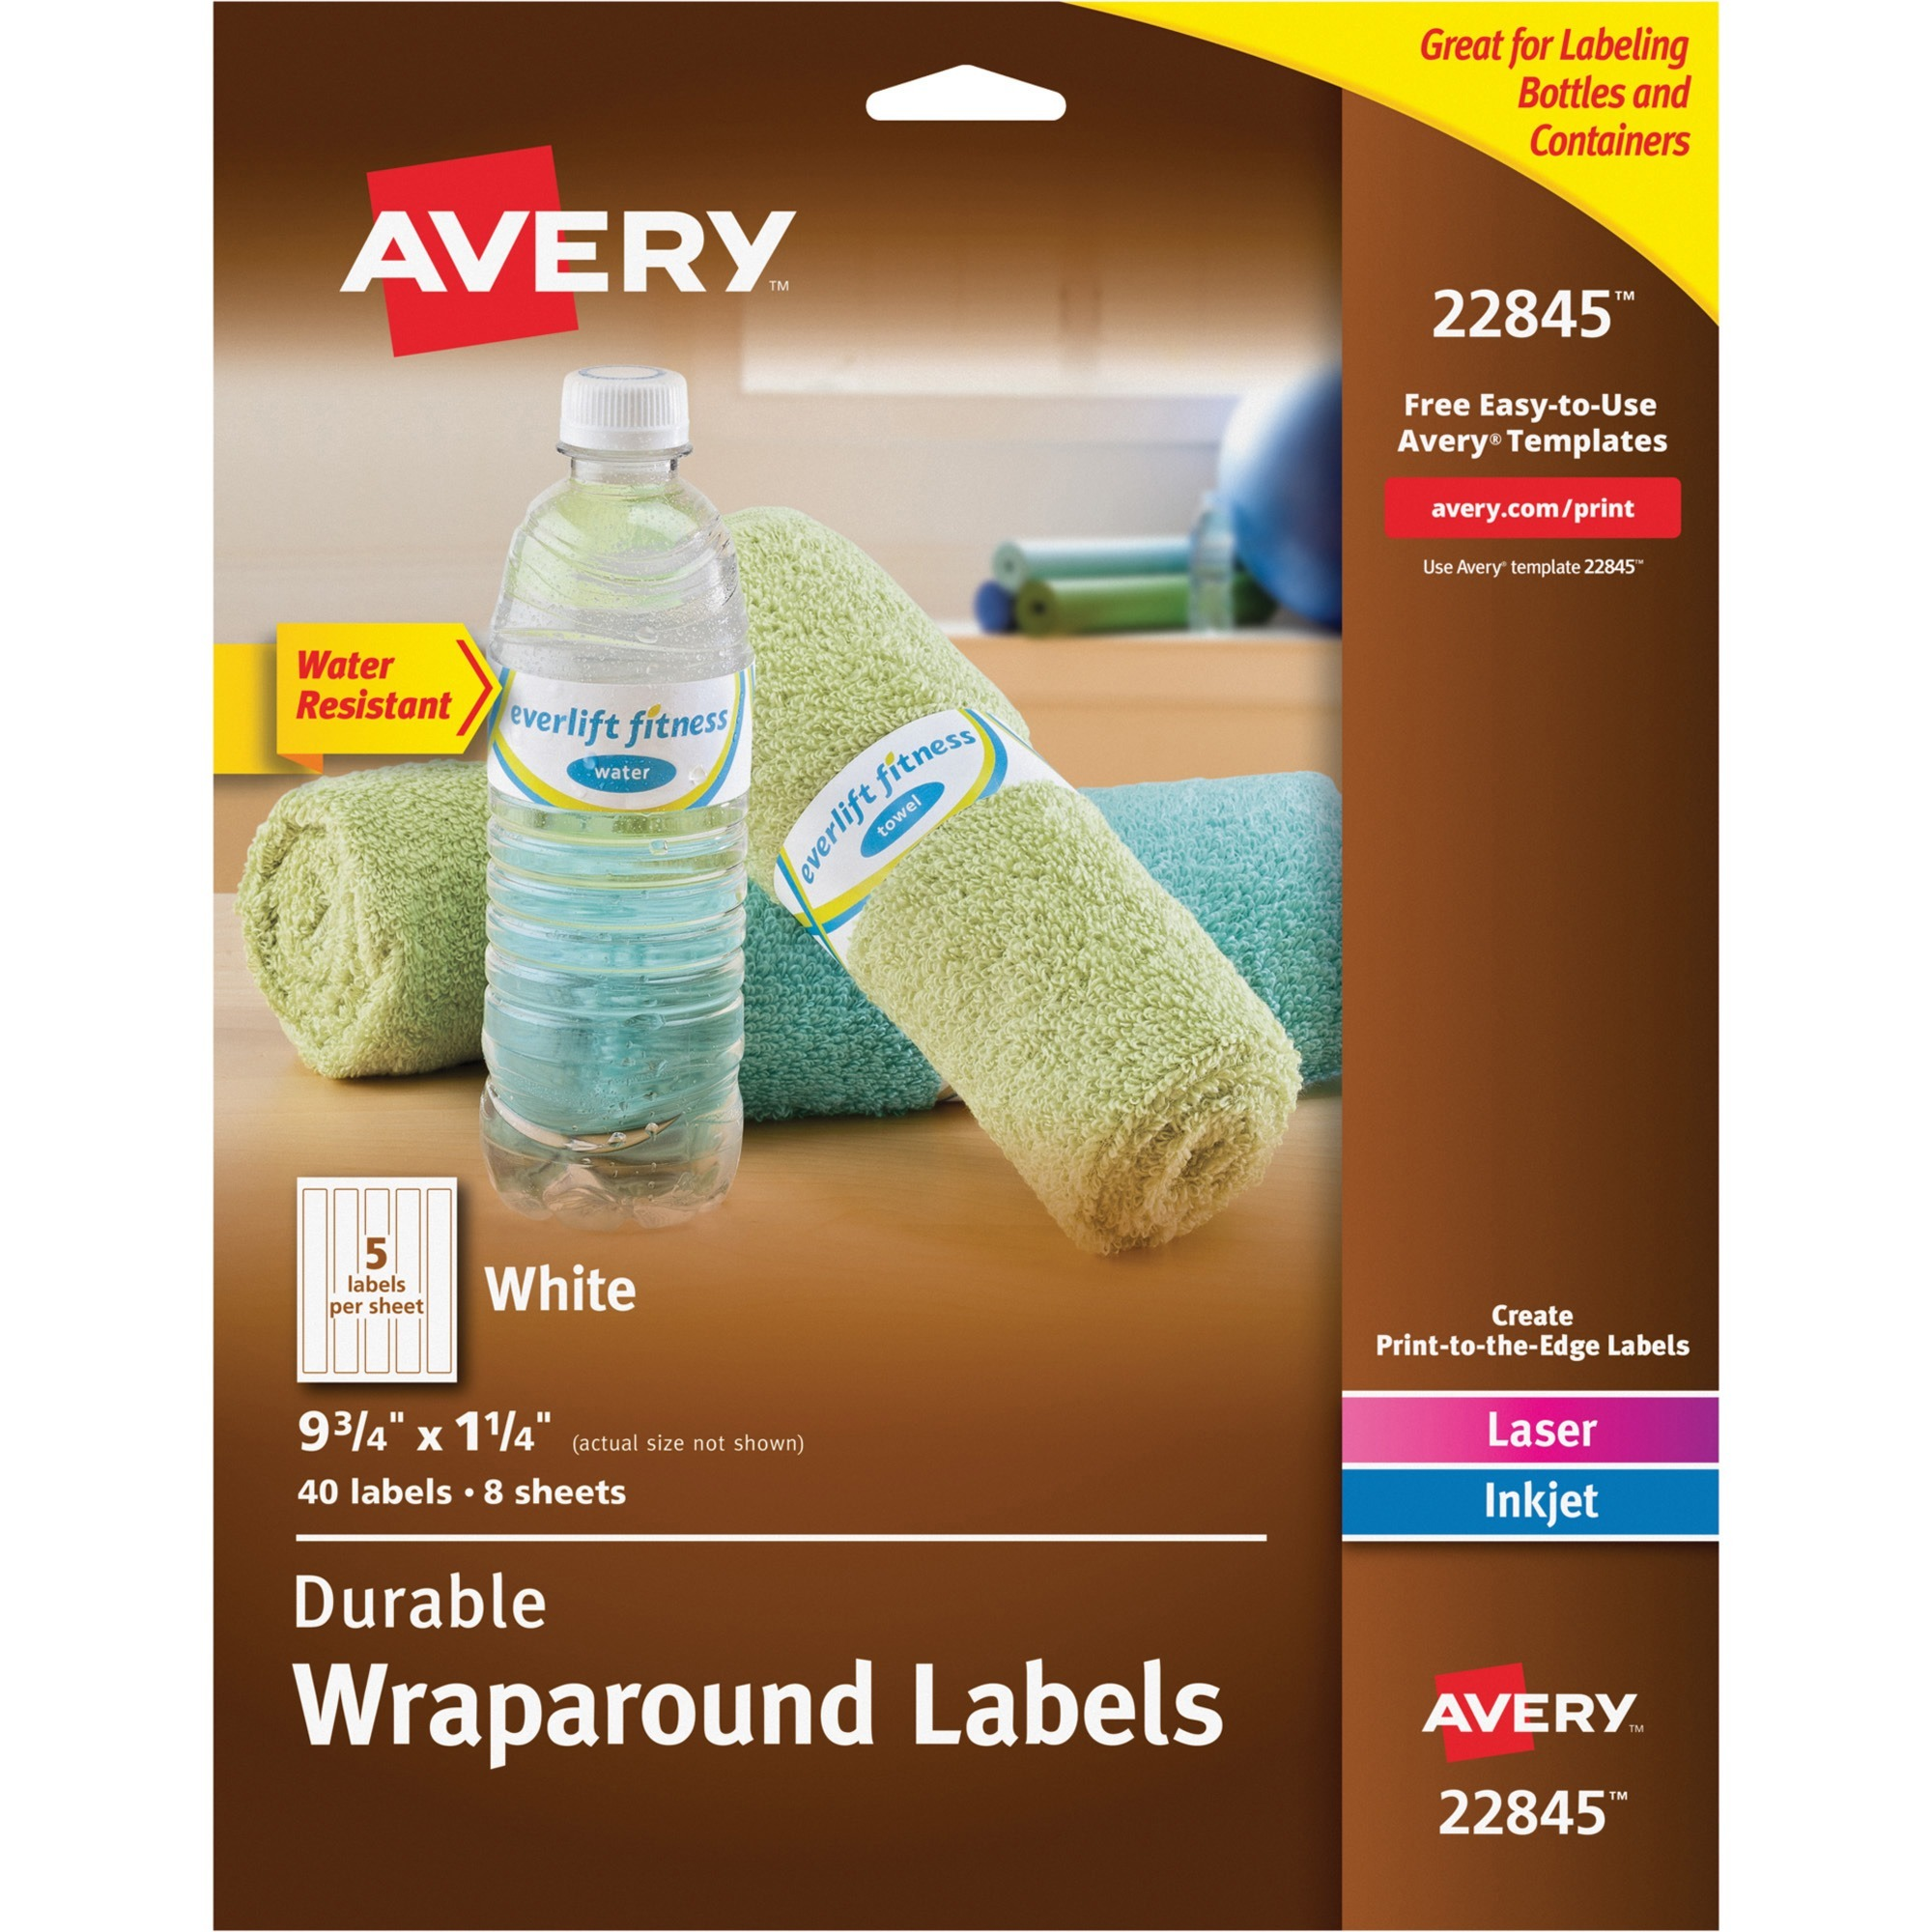 "Avery(R) Durable Water-Resistant White Wraparound Labels 22845, 9-3/4"" x 1-1/4"", Pack of 40"